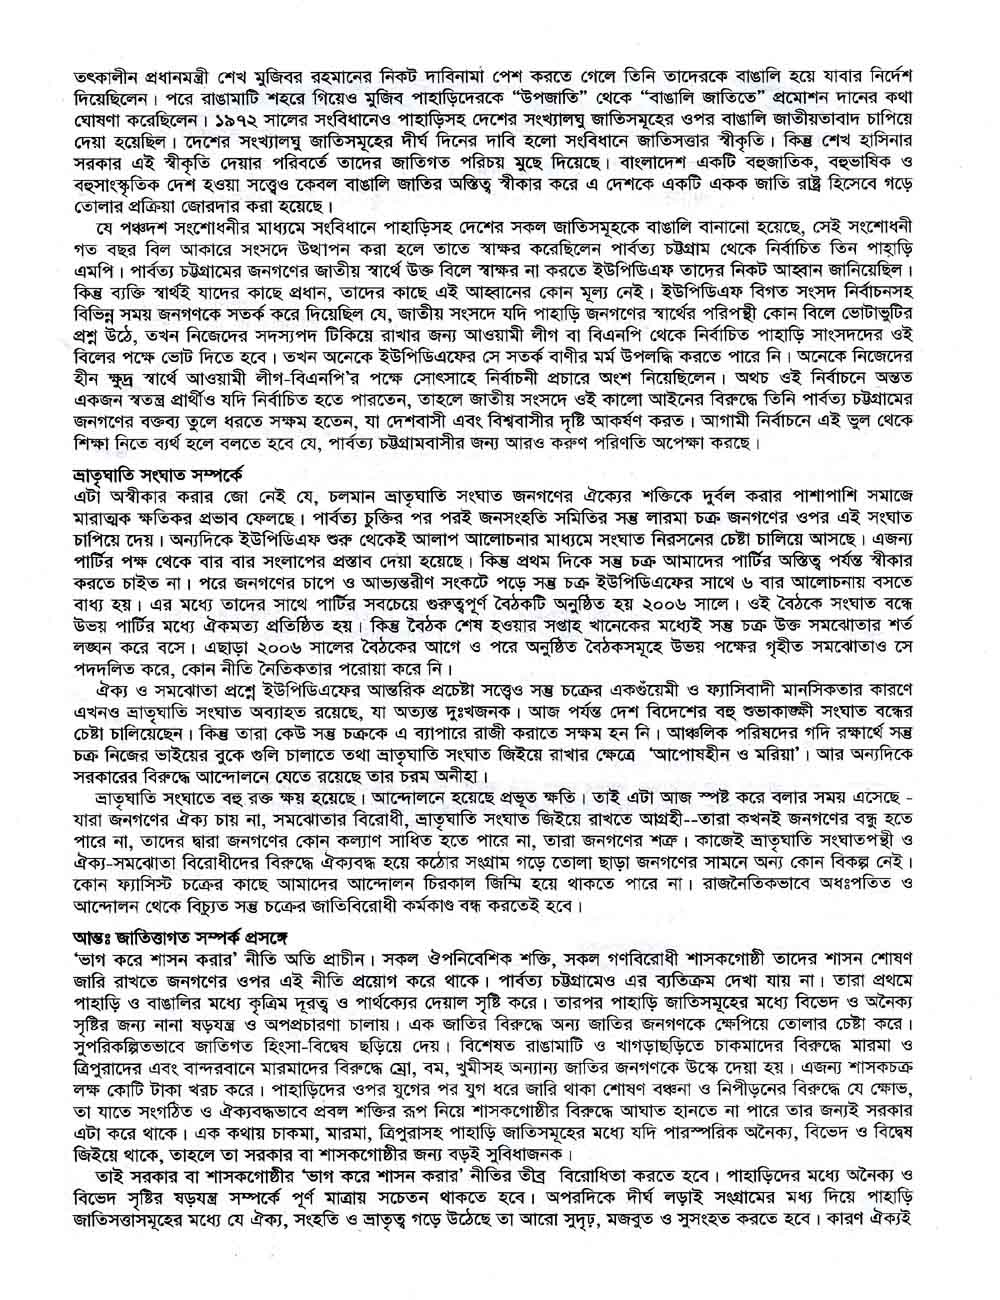 14. Leaflet on 14th founding anniversary, page-2